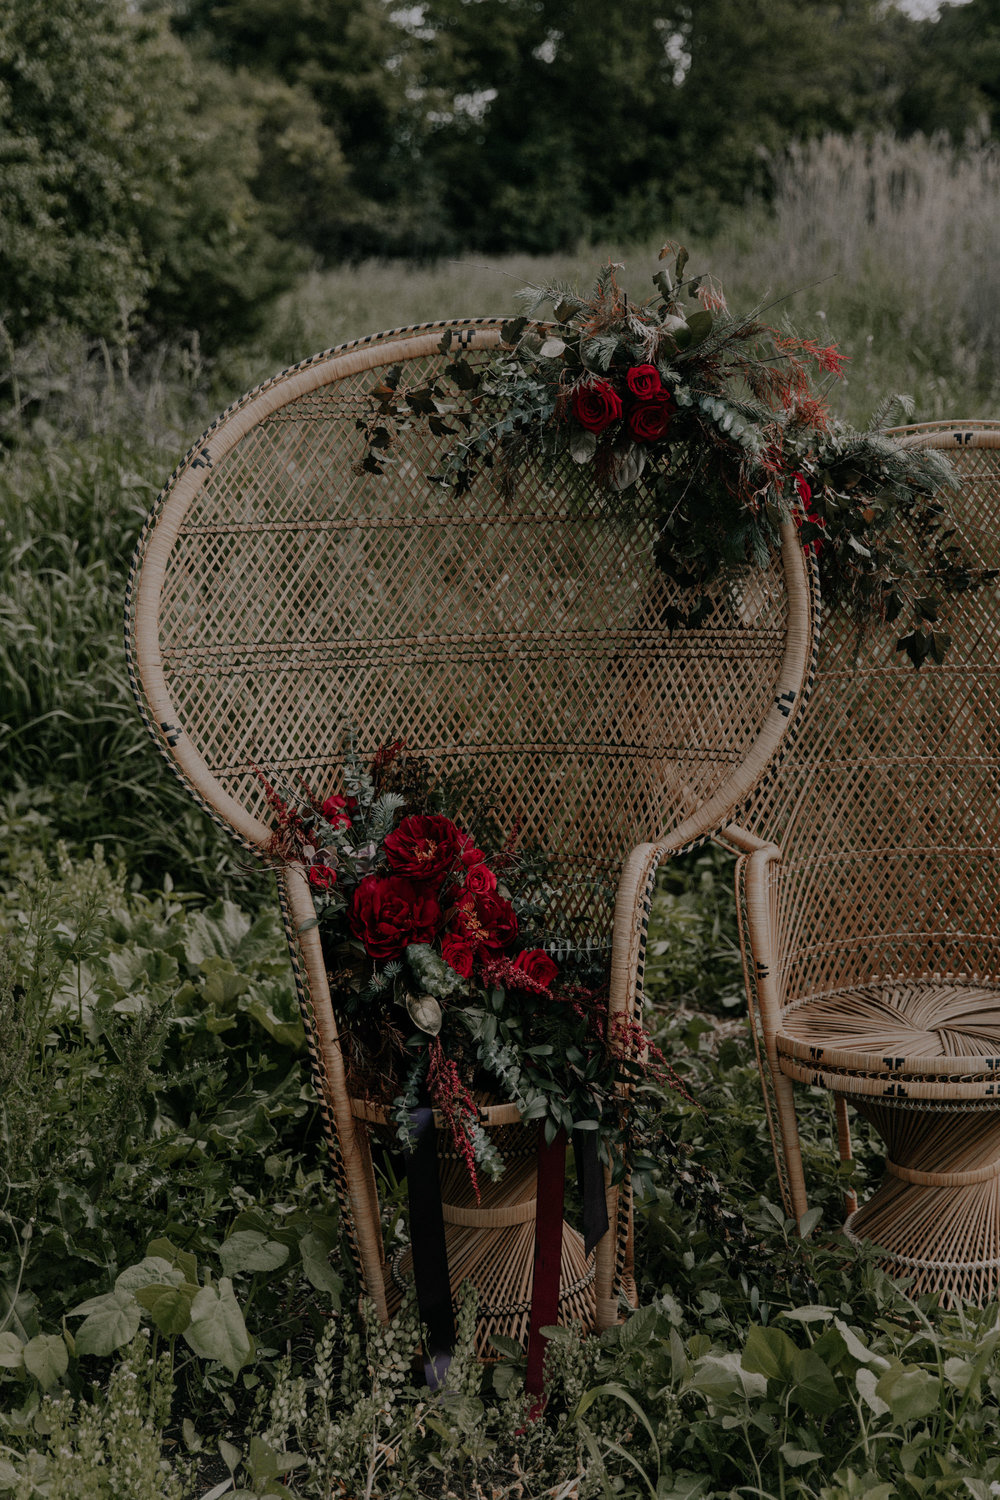 Wedding Wicker Chair with Red Roses and other flowers